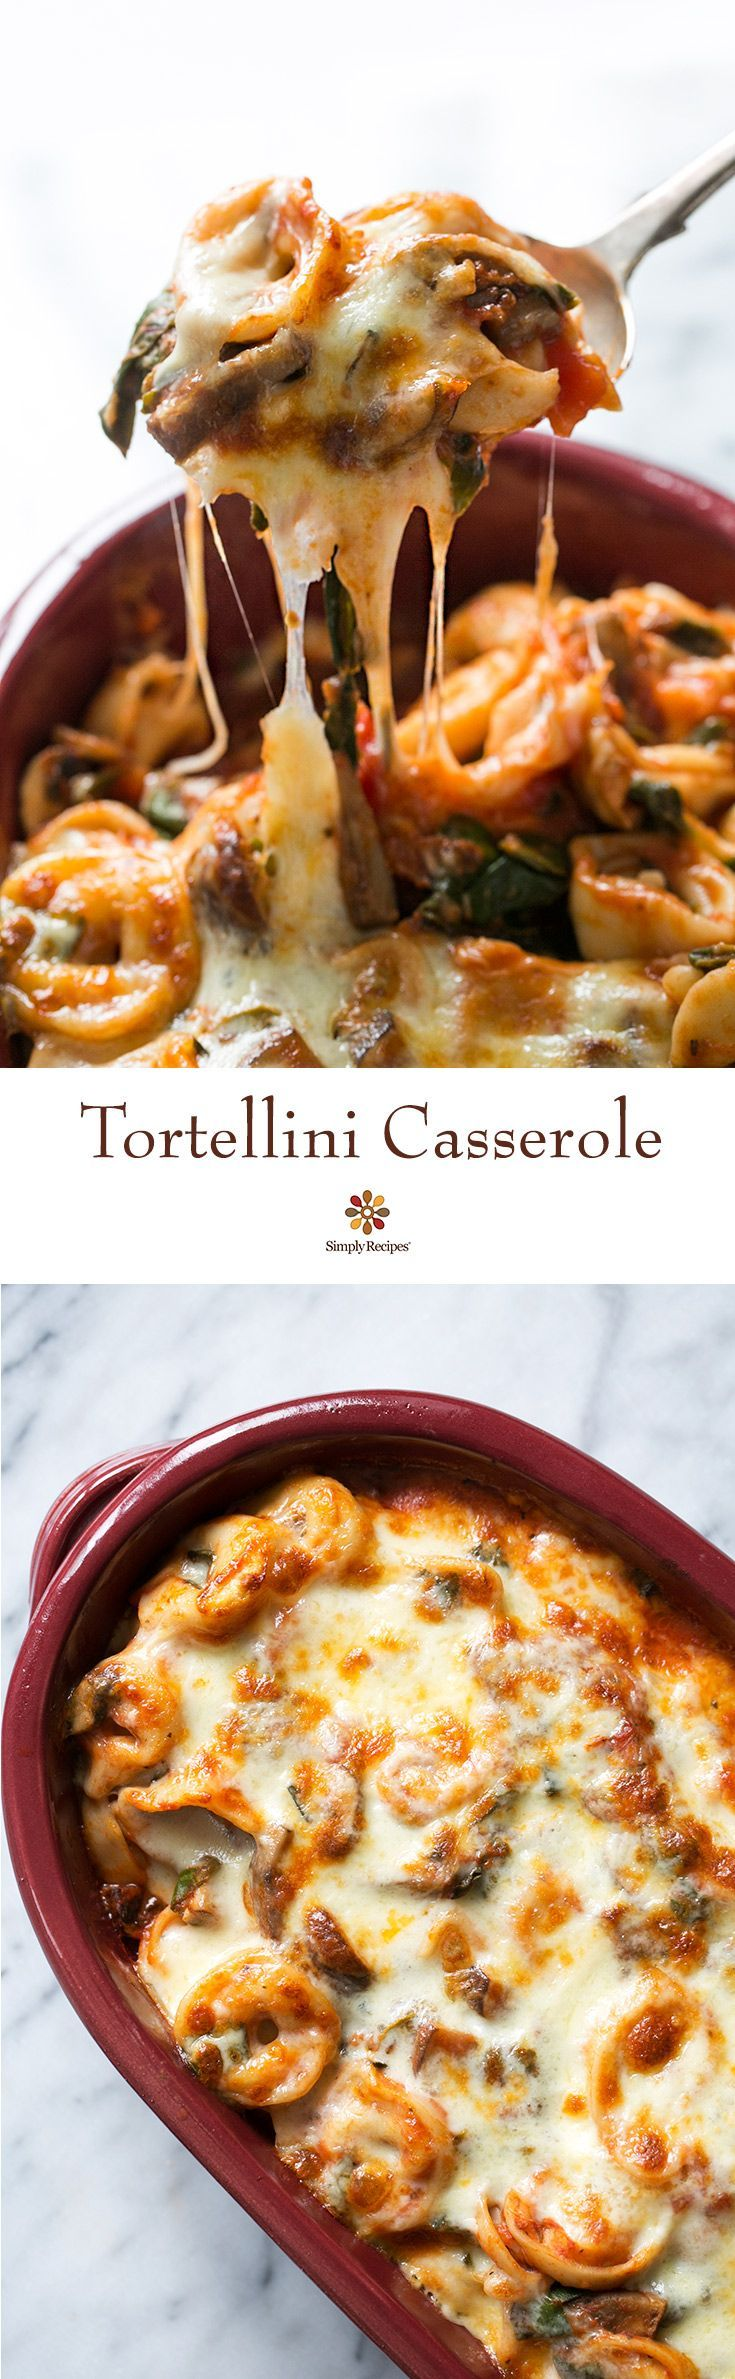 Easy cheesy tortellini casserole! With cheese tortellini, mushrooms, chard, Parmesan and melty Mozzarella cheese. As good as lasagna in half the time! On SimplyRecipes.com